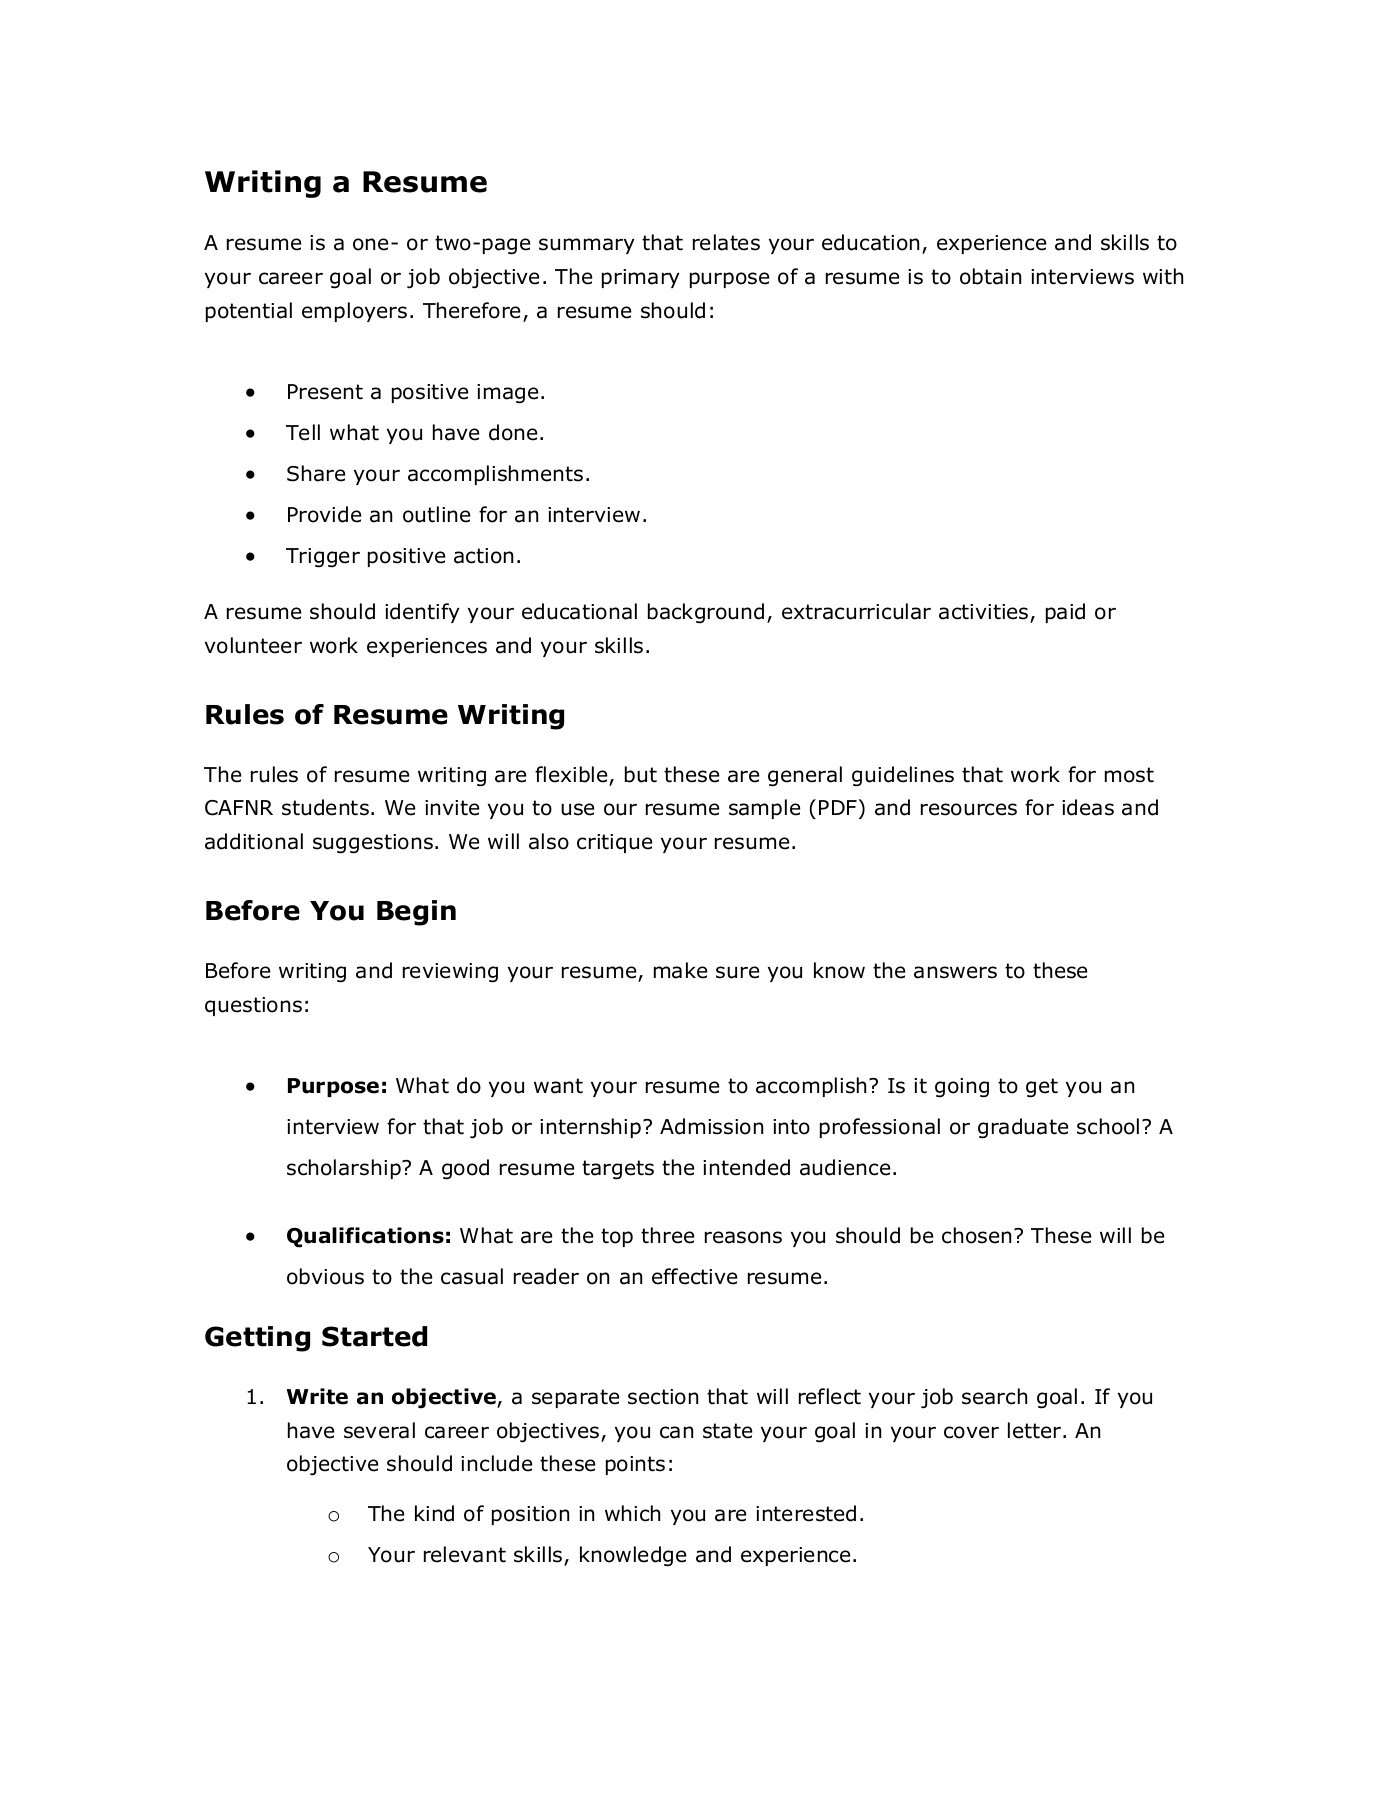 writing resume university of flip pdf fliphtml5 for scholarship interview client service Resume Resume For Scholarship Interview